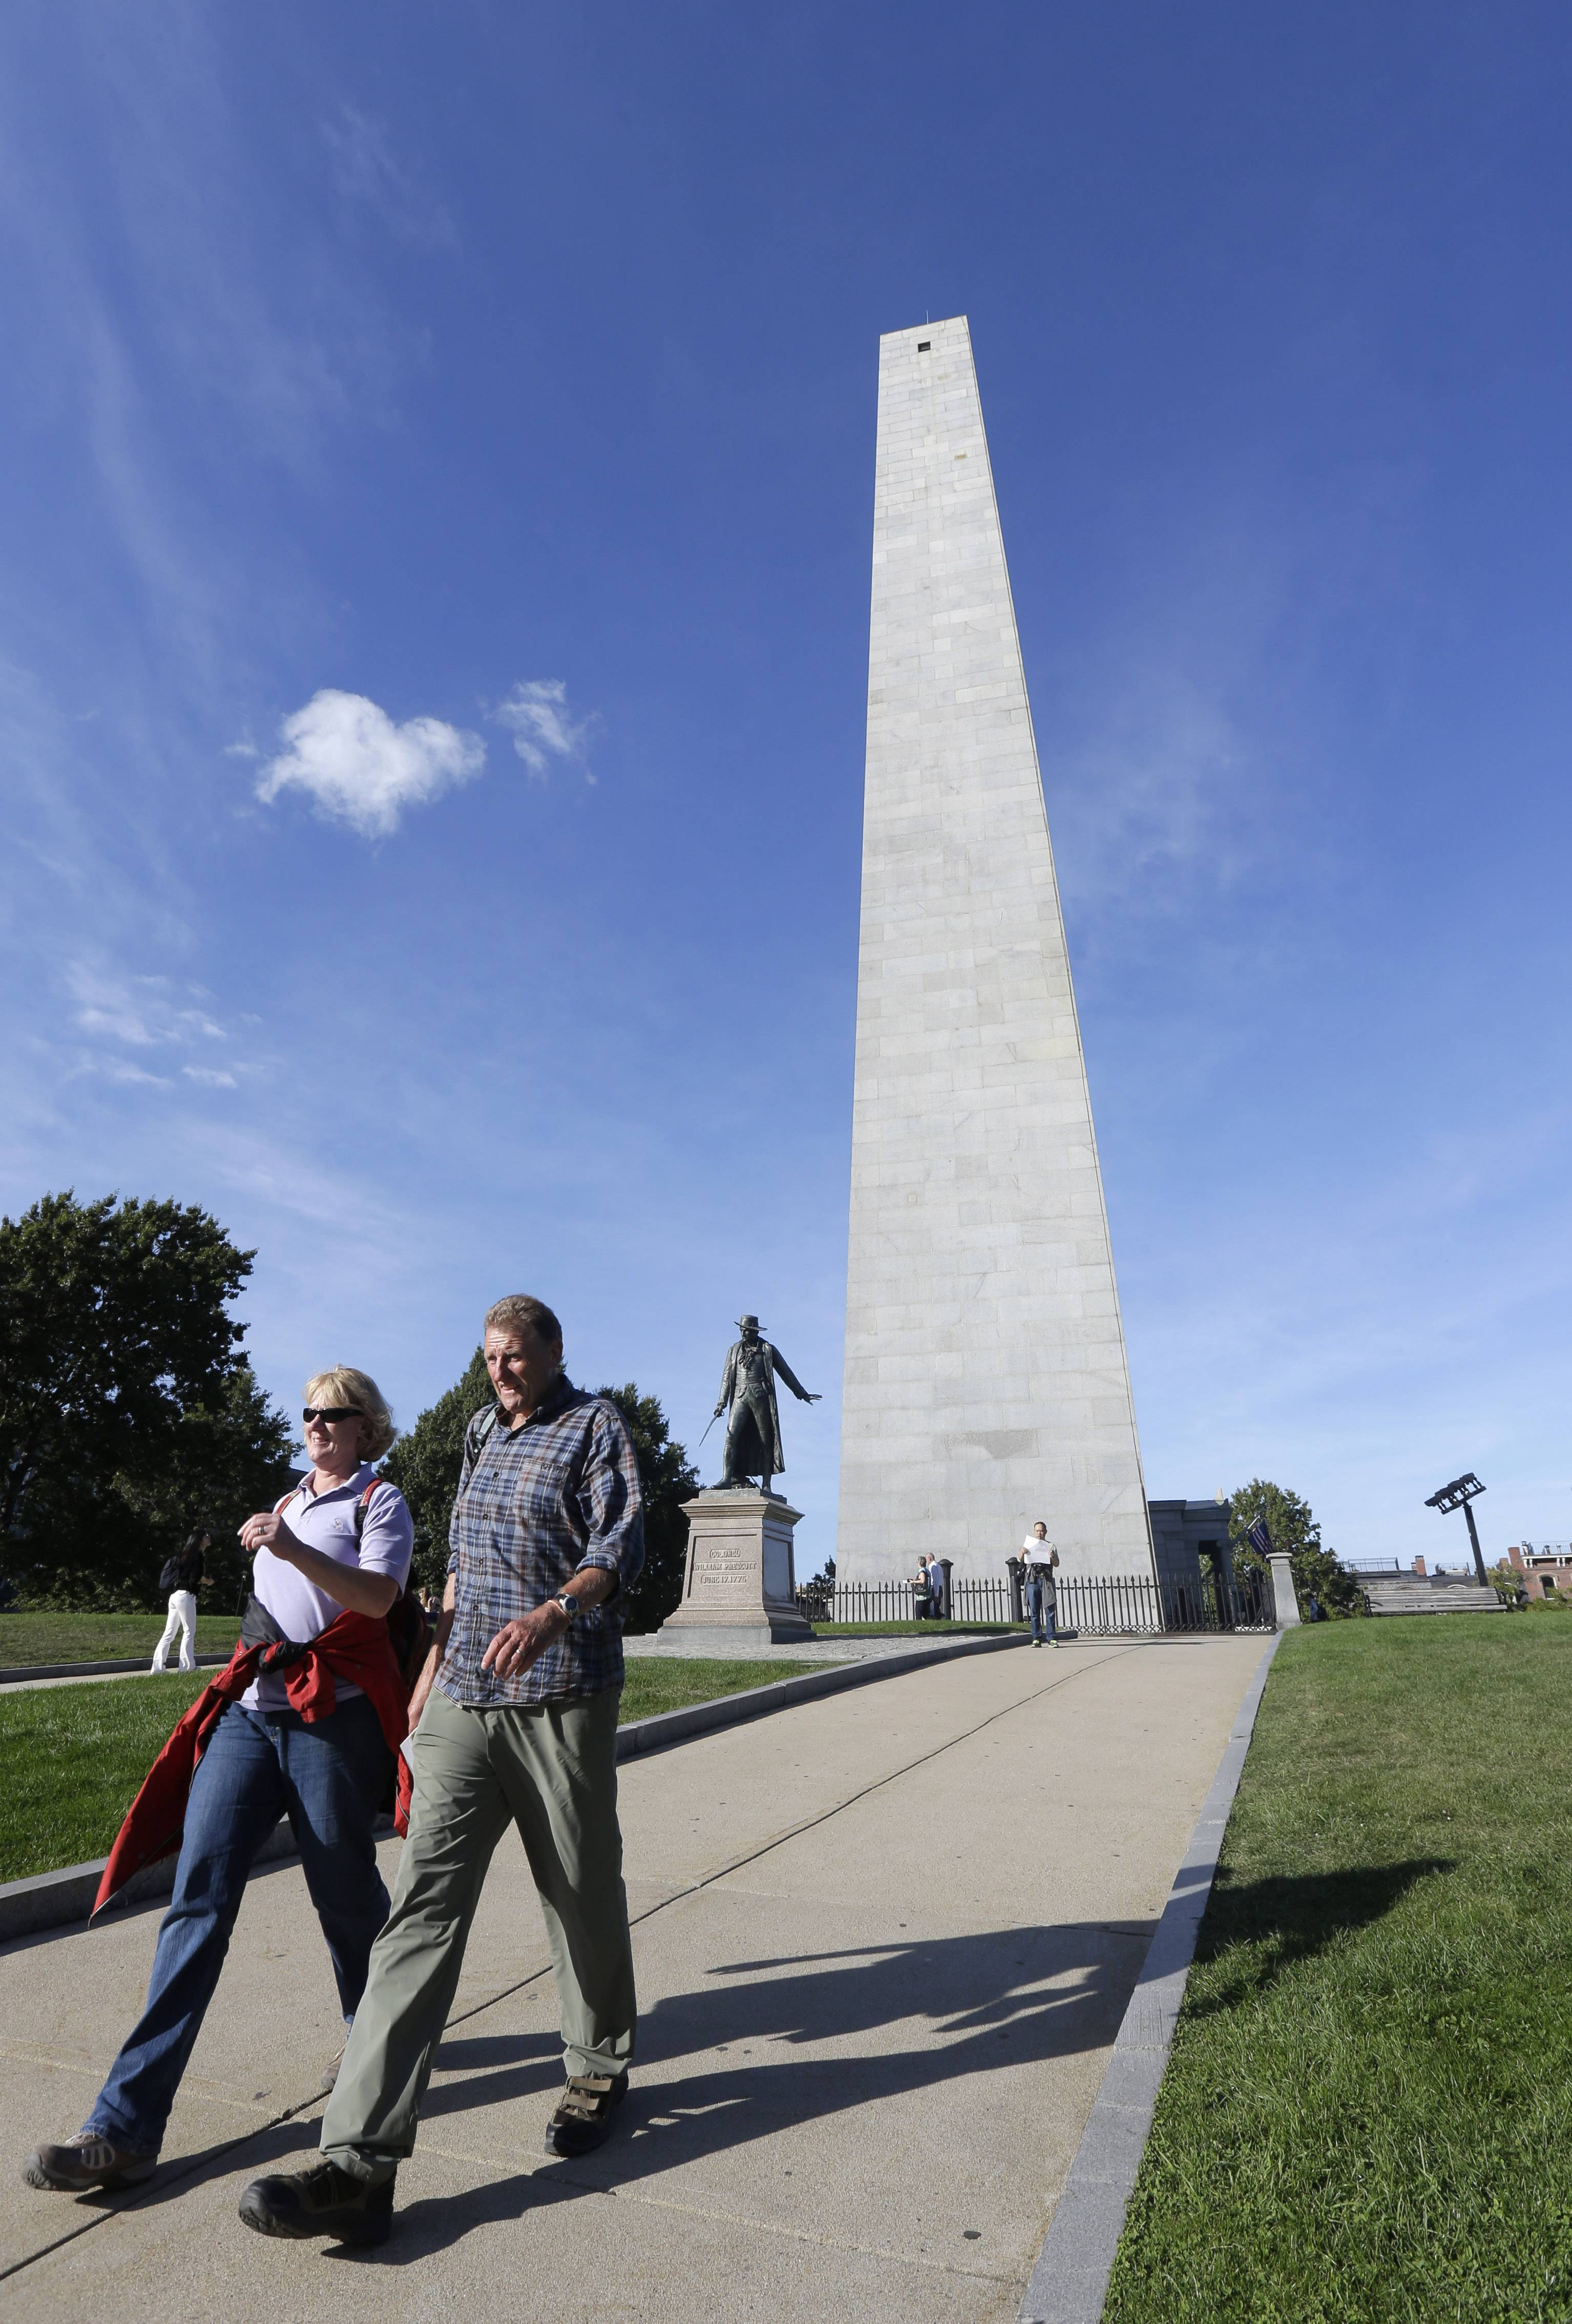 Visitors stroll along a path near the Bunker Hill Monument, in the Charlestown neighborhood of Boston. The capital of Massachusetts is a vibrant modern city with a history that goes back centuries. Scattered throughout the downtown are buildings, churches and meetinghouses dating back to the American Revolution and earlier.